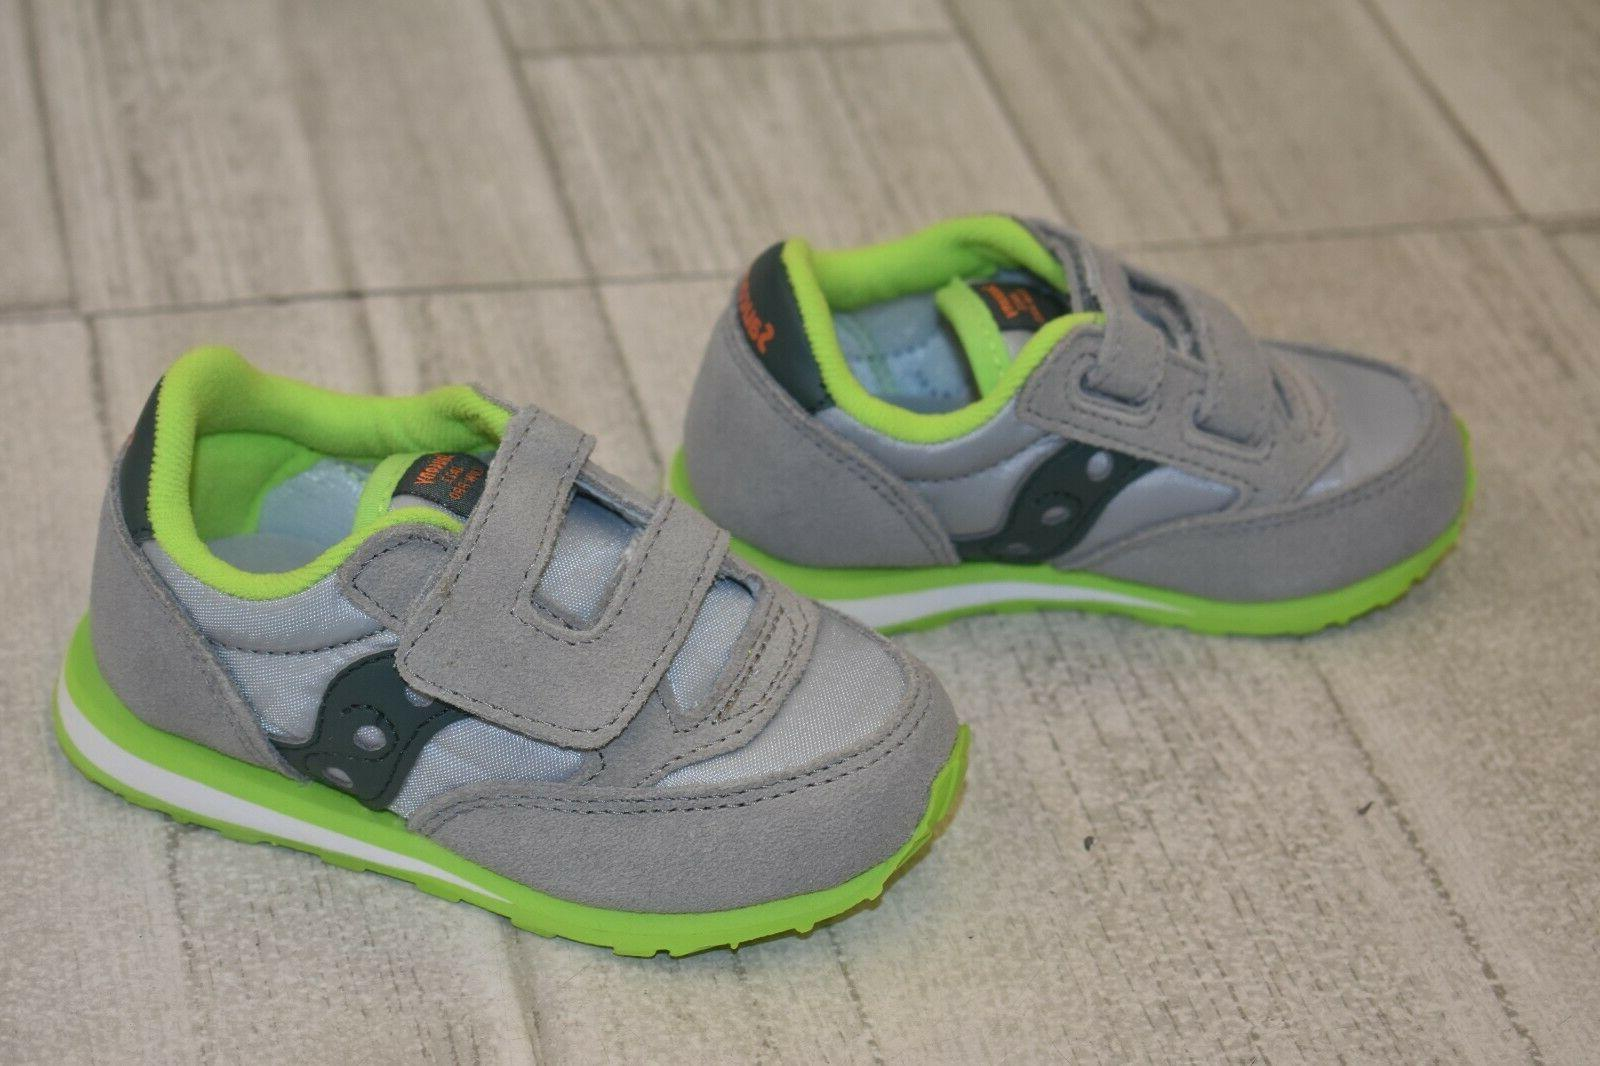 **Saucony Sneaker - Toddler Size 6M, Grey/Lime